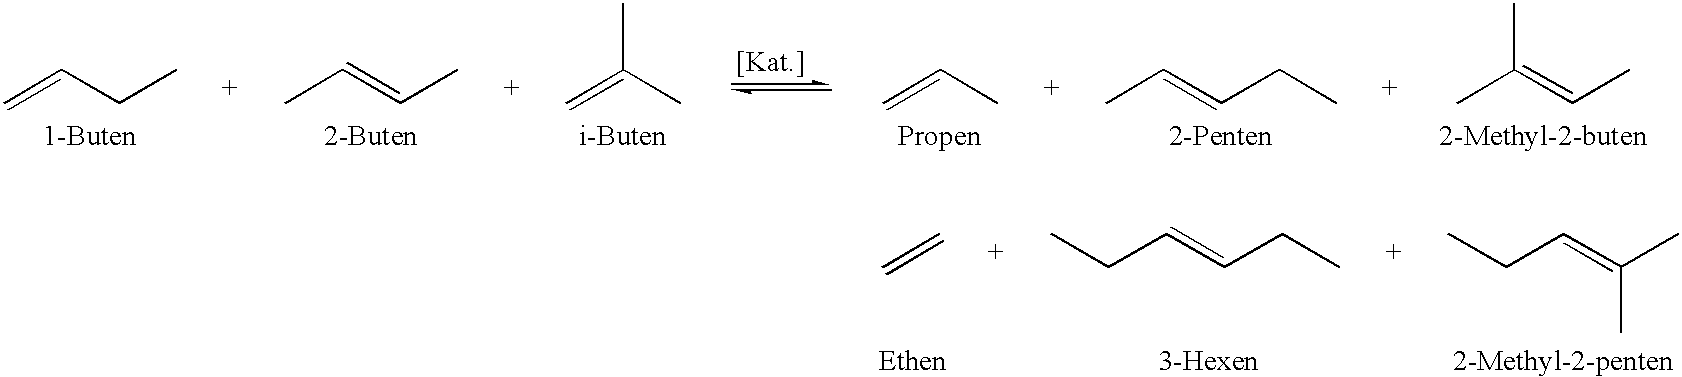 metathesis butenes A process for producing propylene and aromatics from butenes by metathesis and aromatization.